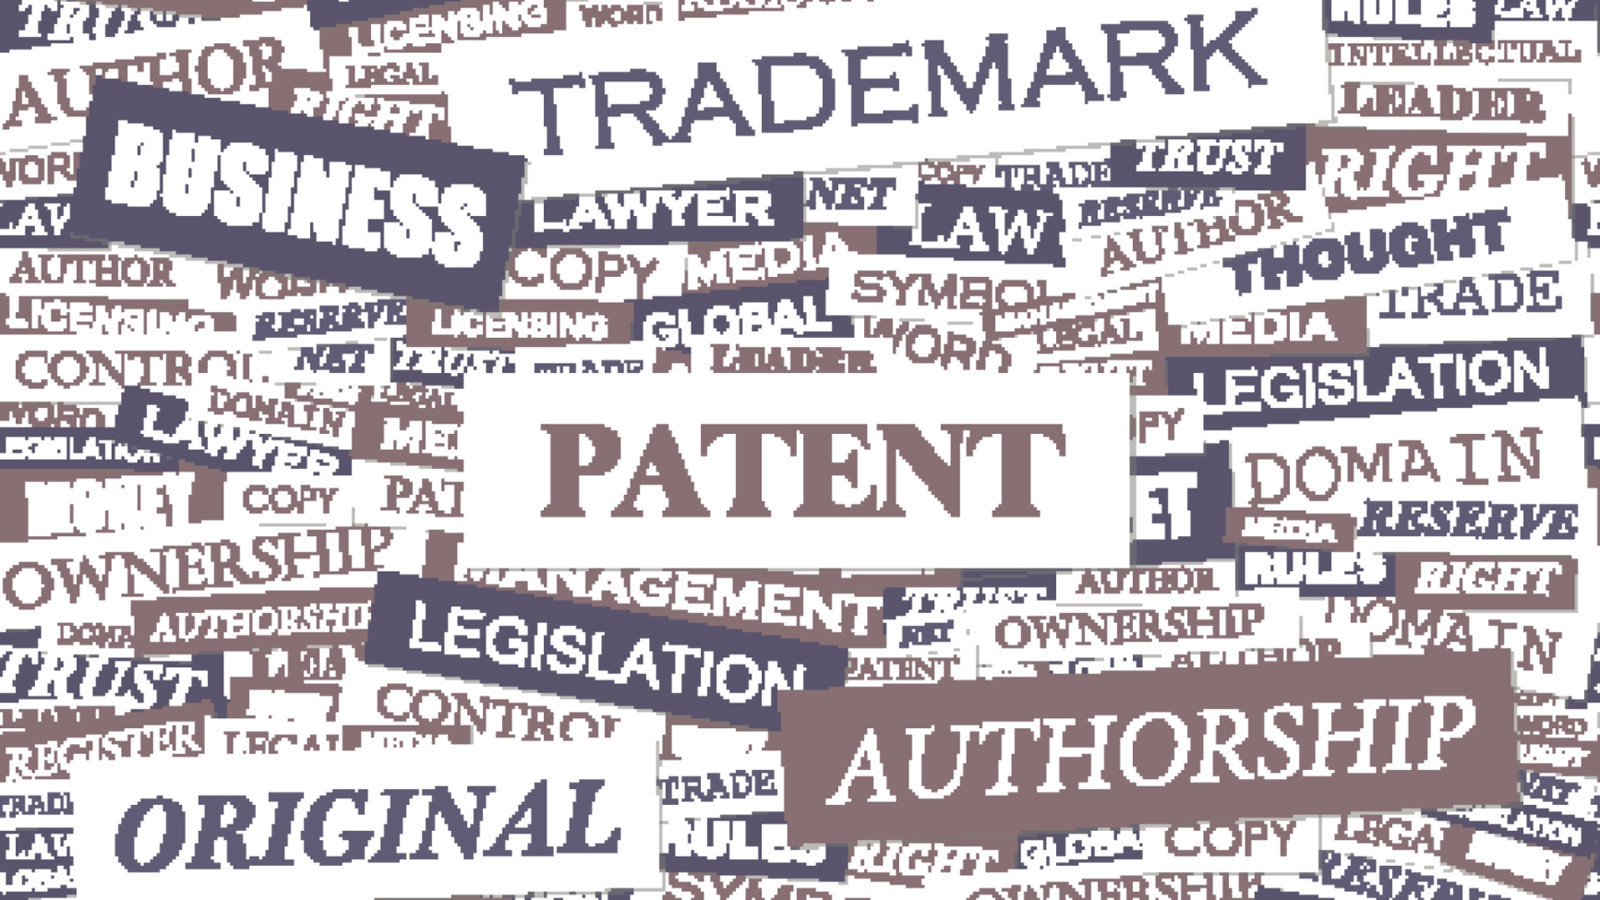 Advice for entrepreneurs looking to patent an idea